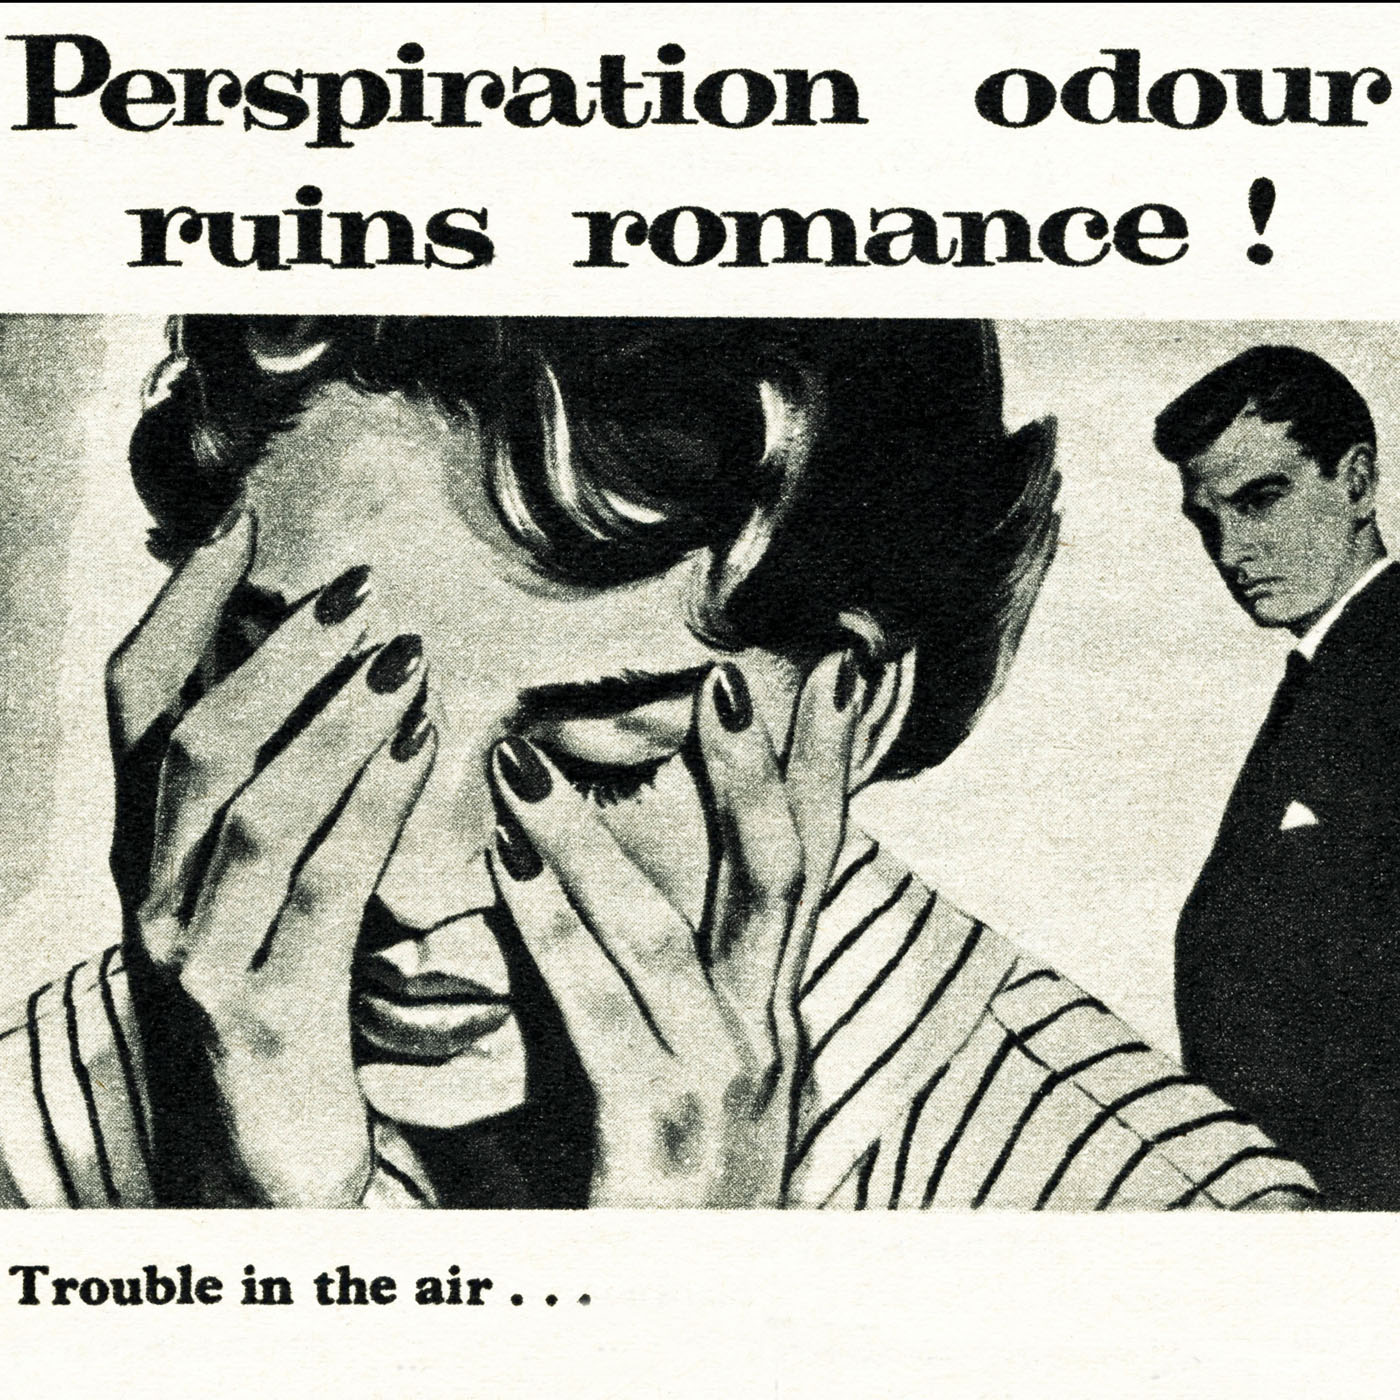 Caption: 1950s advertising. Vintage original magazine advertisement advert for MUM perspiration cream for women, Credit: f8 archive / Alamy Stock Photo